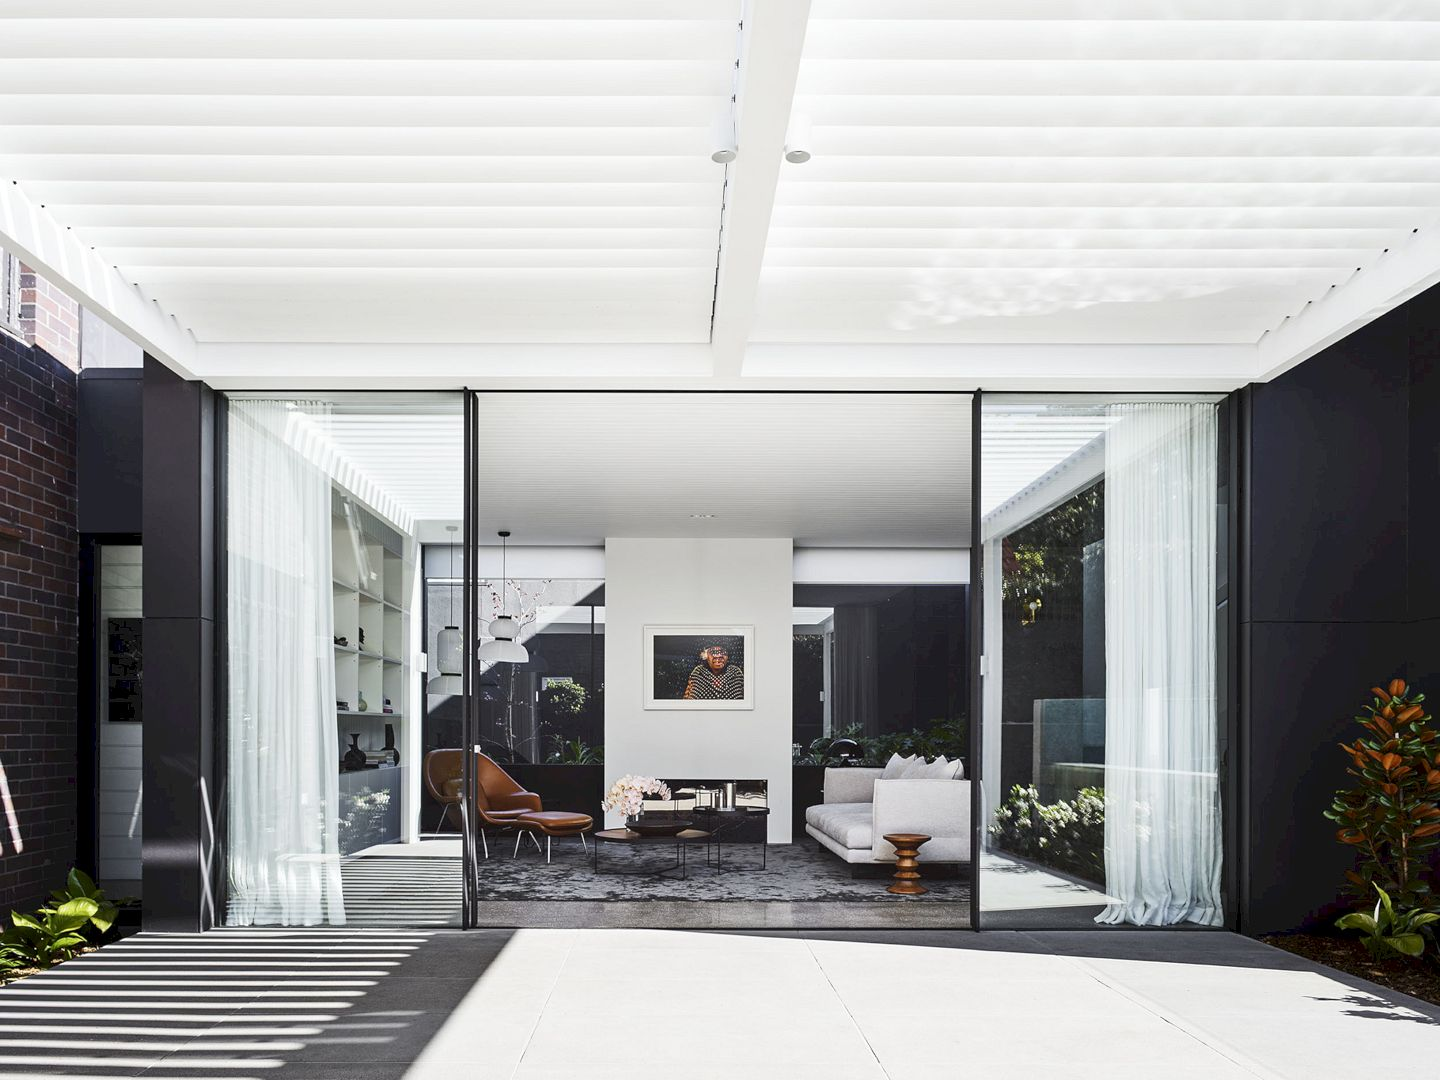 Attic House By Madeleine Blanchfield Architects 5